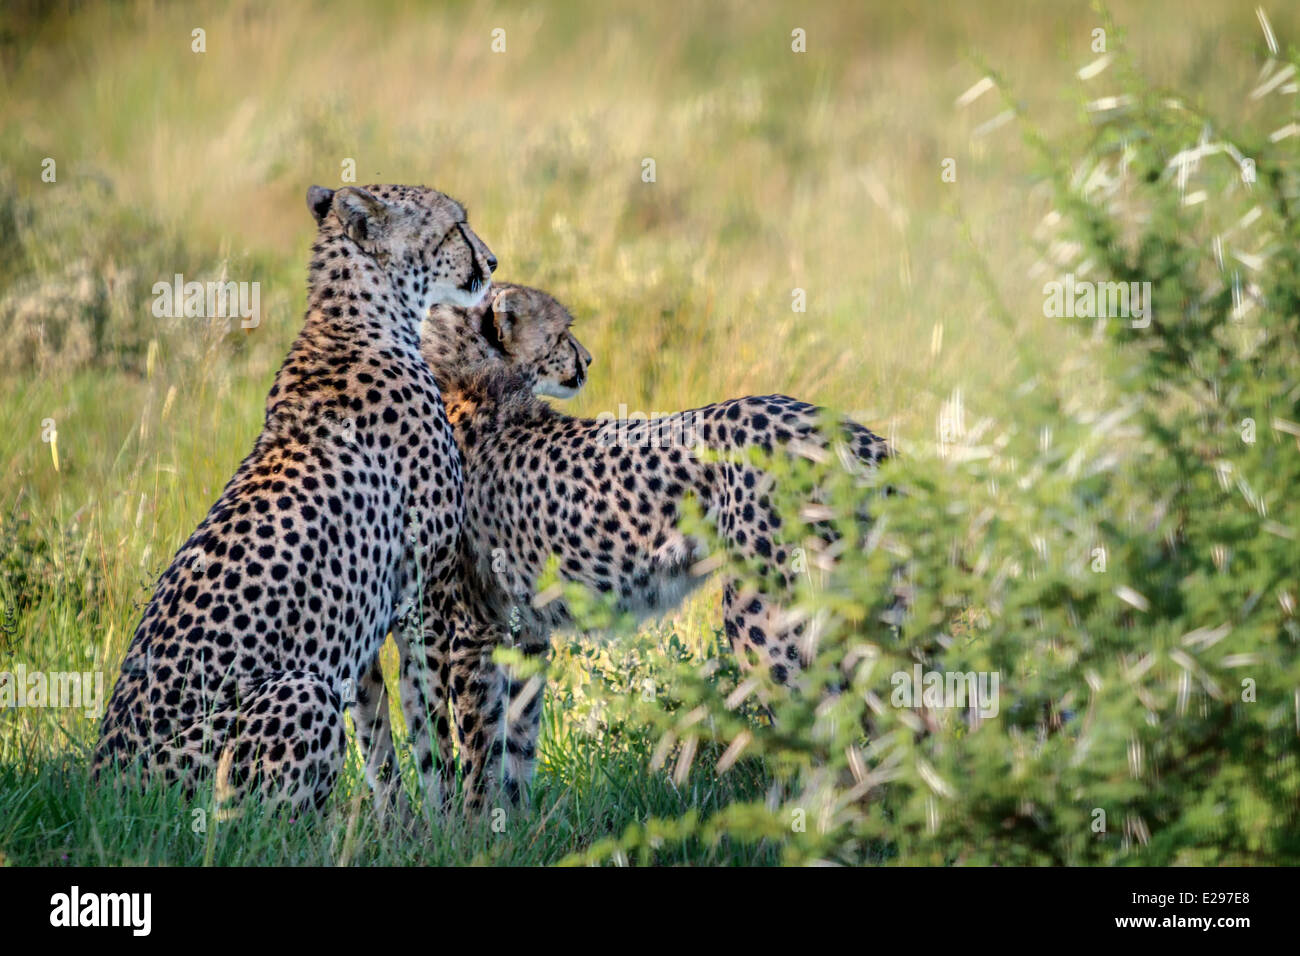 Cheetah mother with almost grown son in Central Kalahari Game Reserve, Botswana - Stock Image